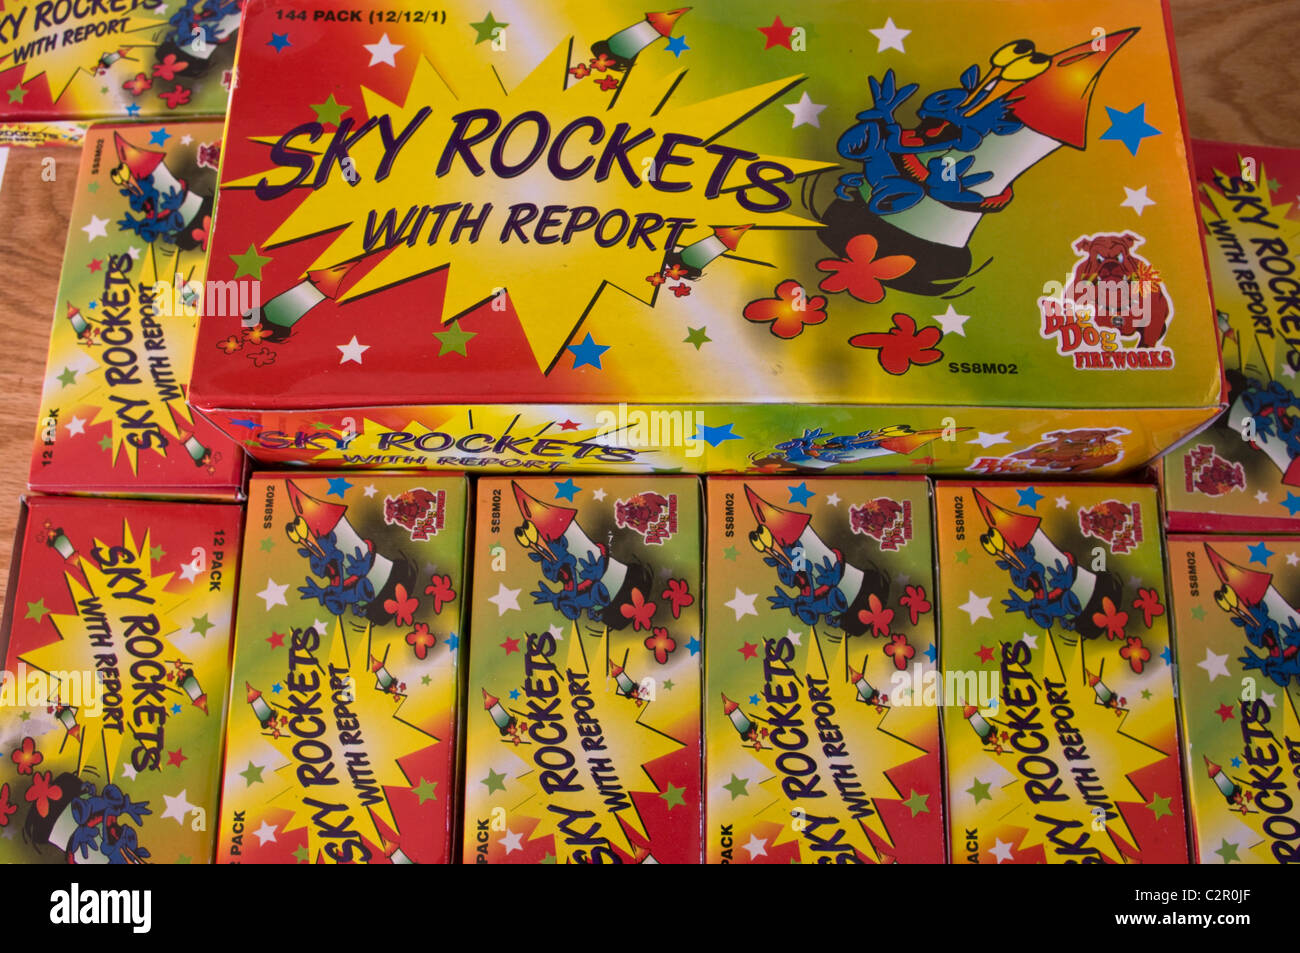 big dog fireworks, sky rockets, fire crackers - Stock Image